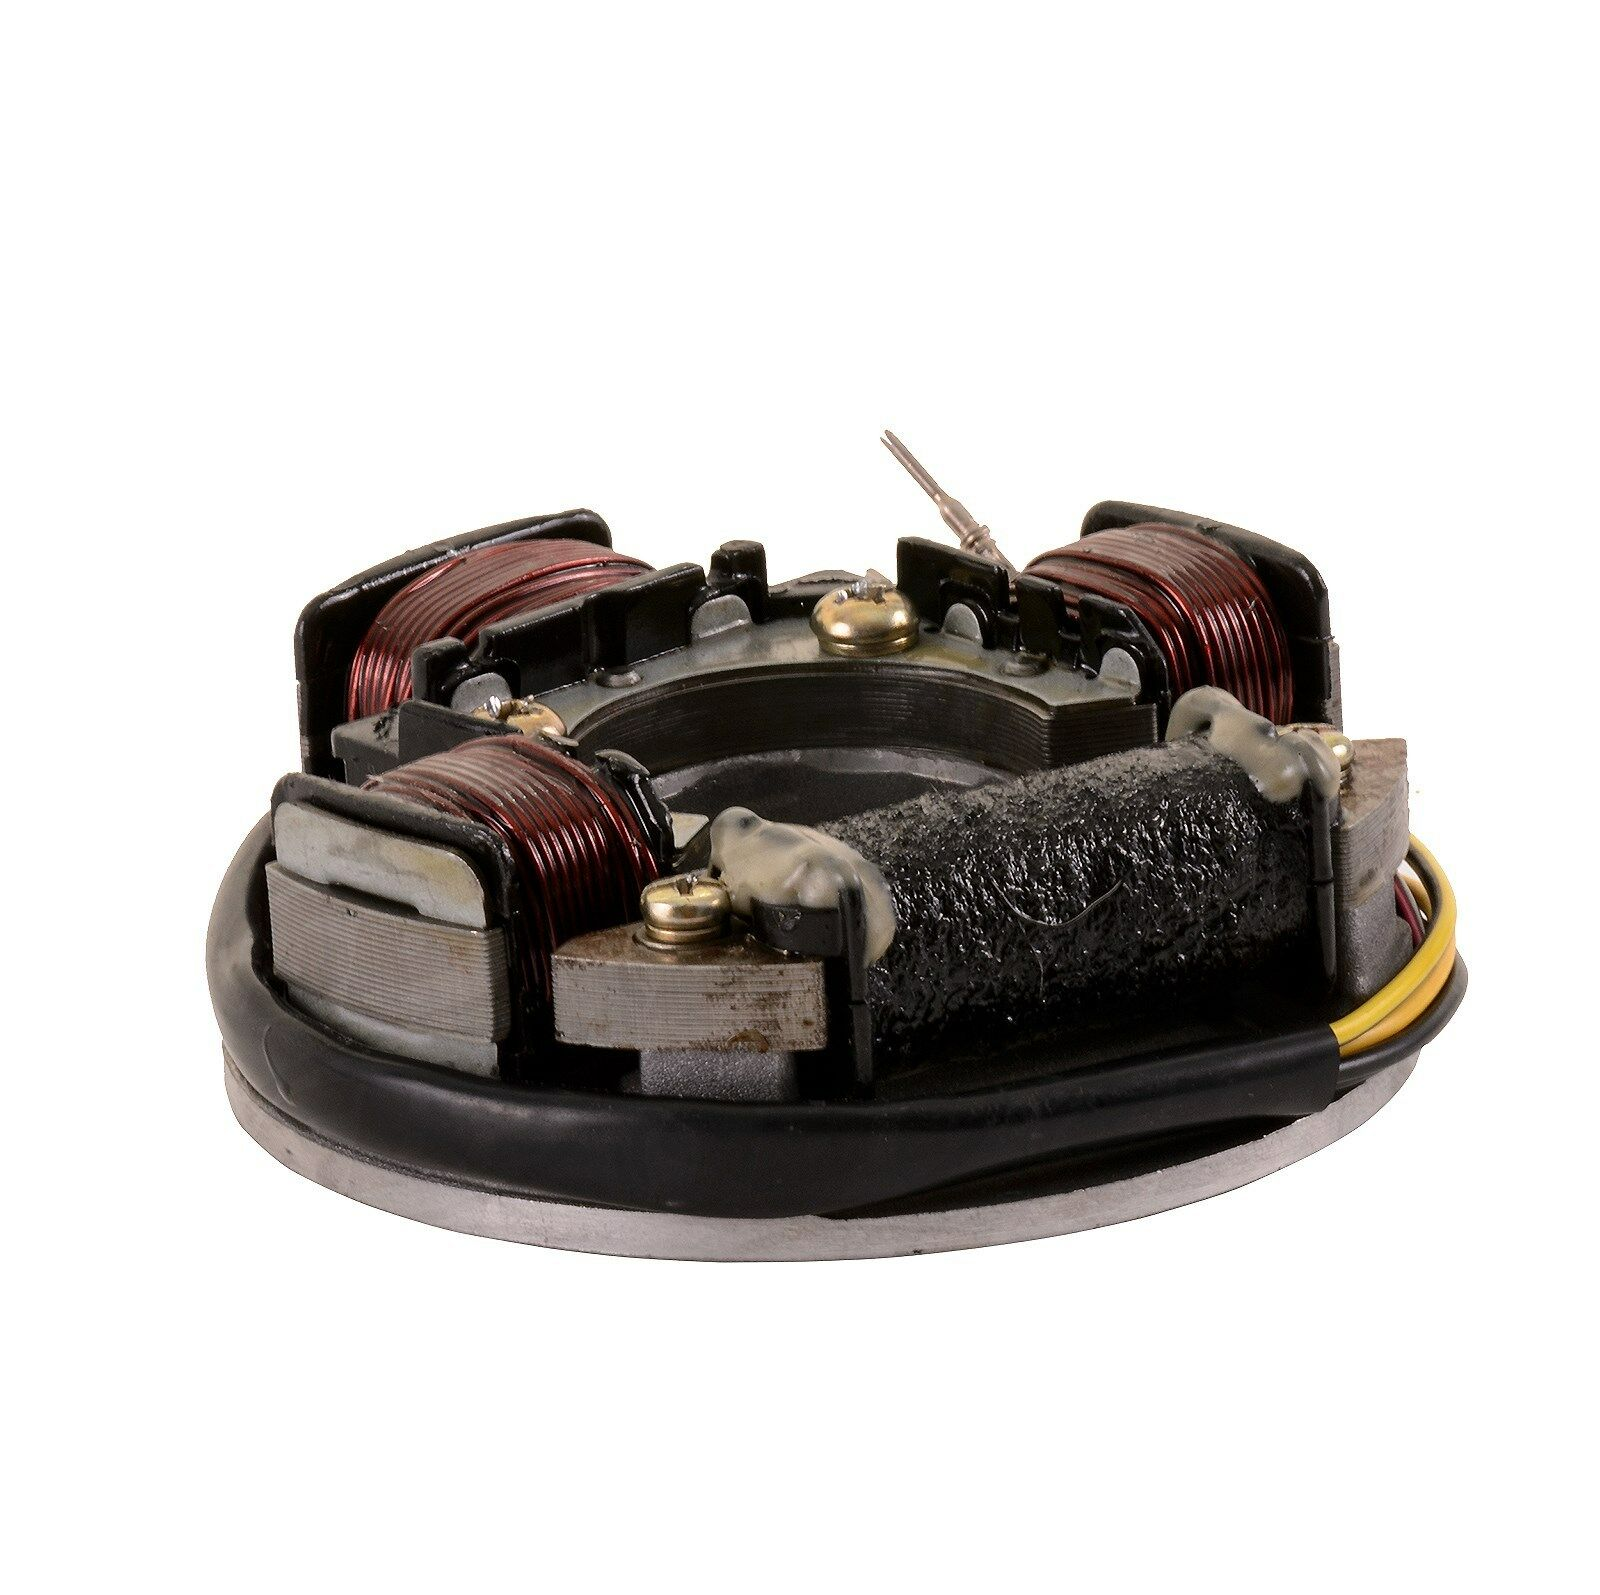 Details about SeaDoo Stator Assembly GTI GTI LE 1998 1999 2000 2001 2002  2003 2004/HX 95 96 97